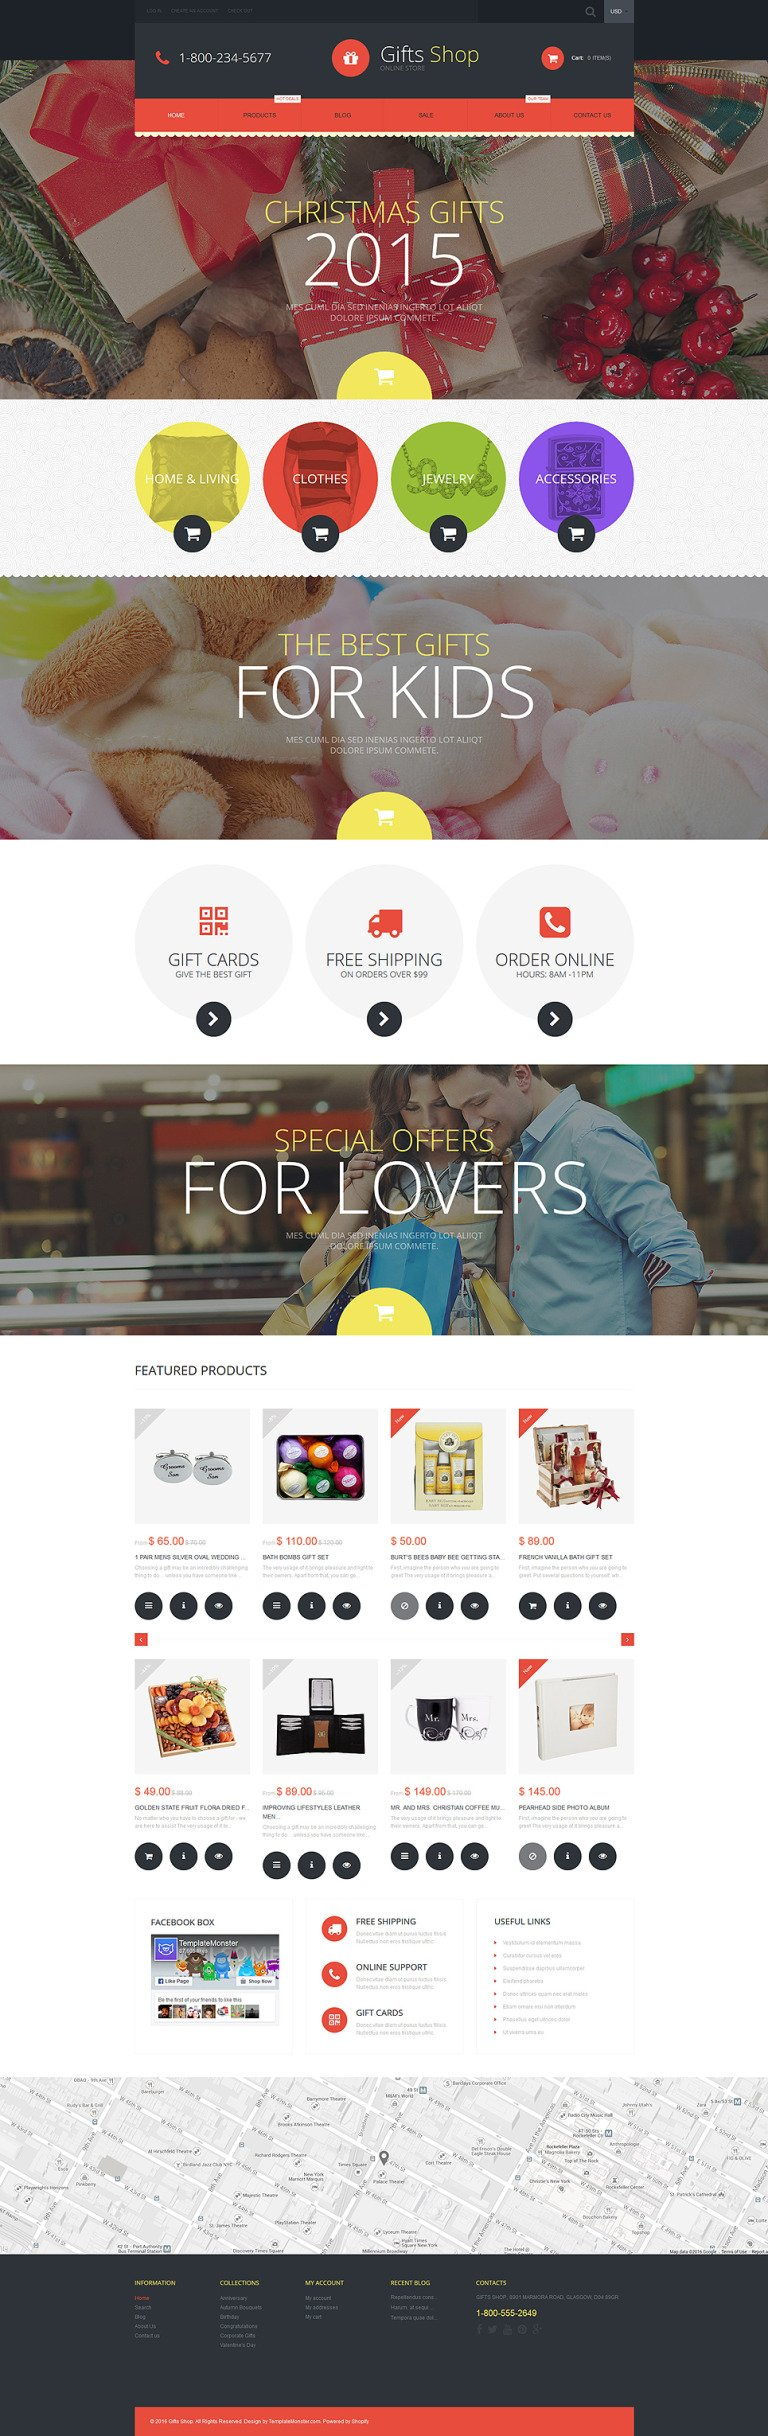 Gifts Shop Shopify Theme New Screenshots BIG